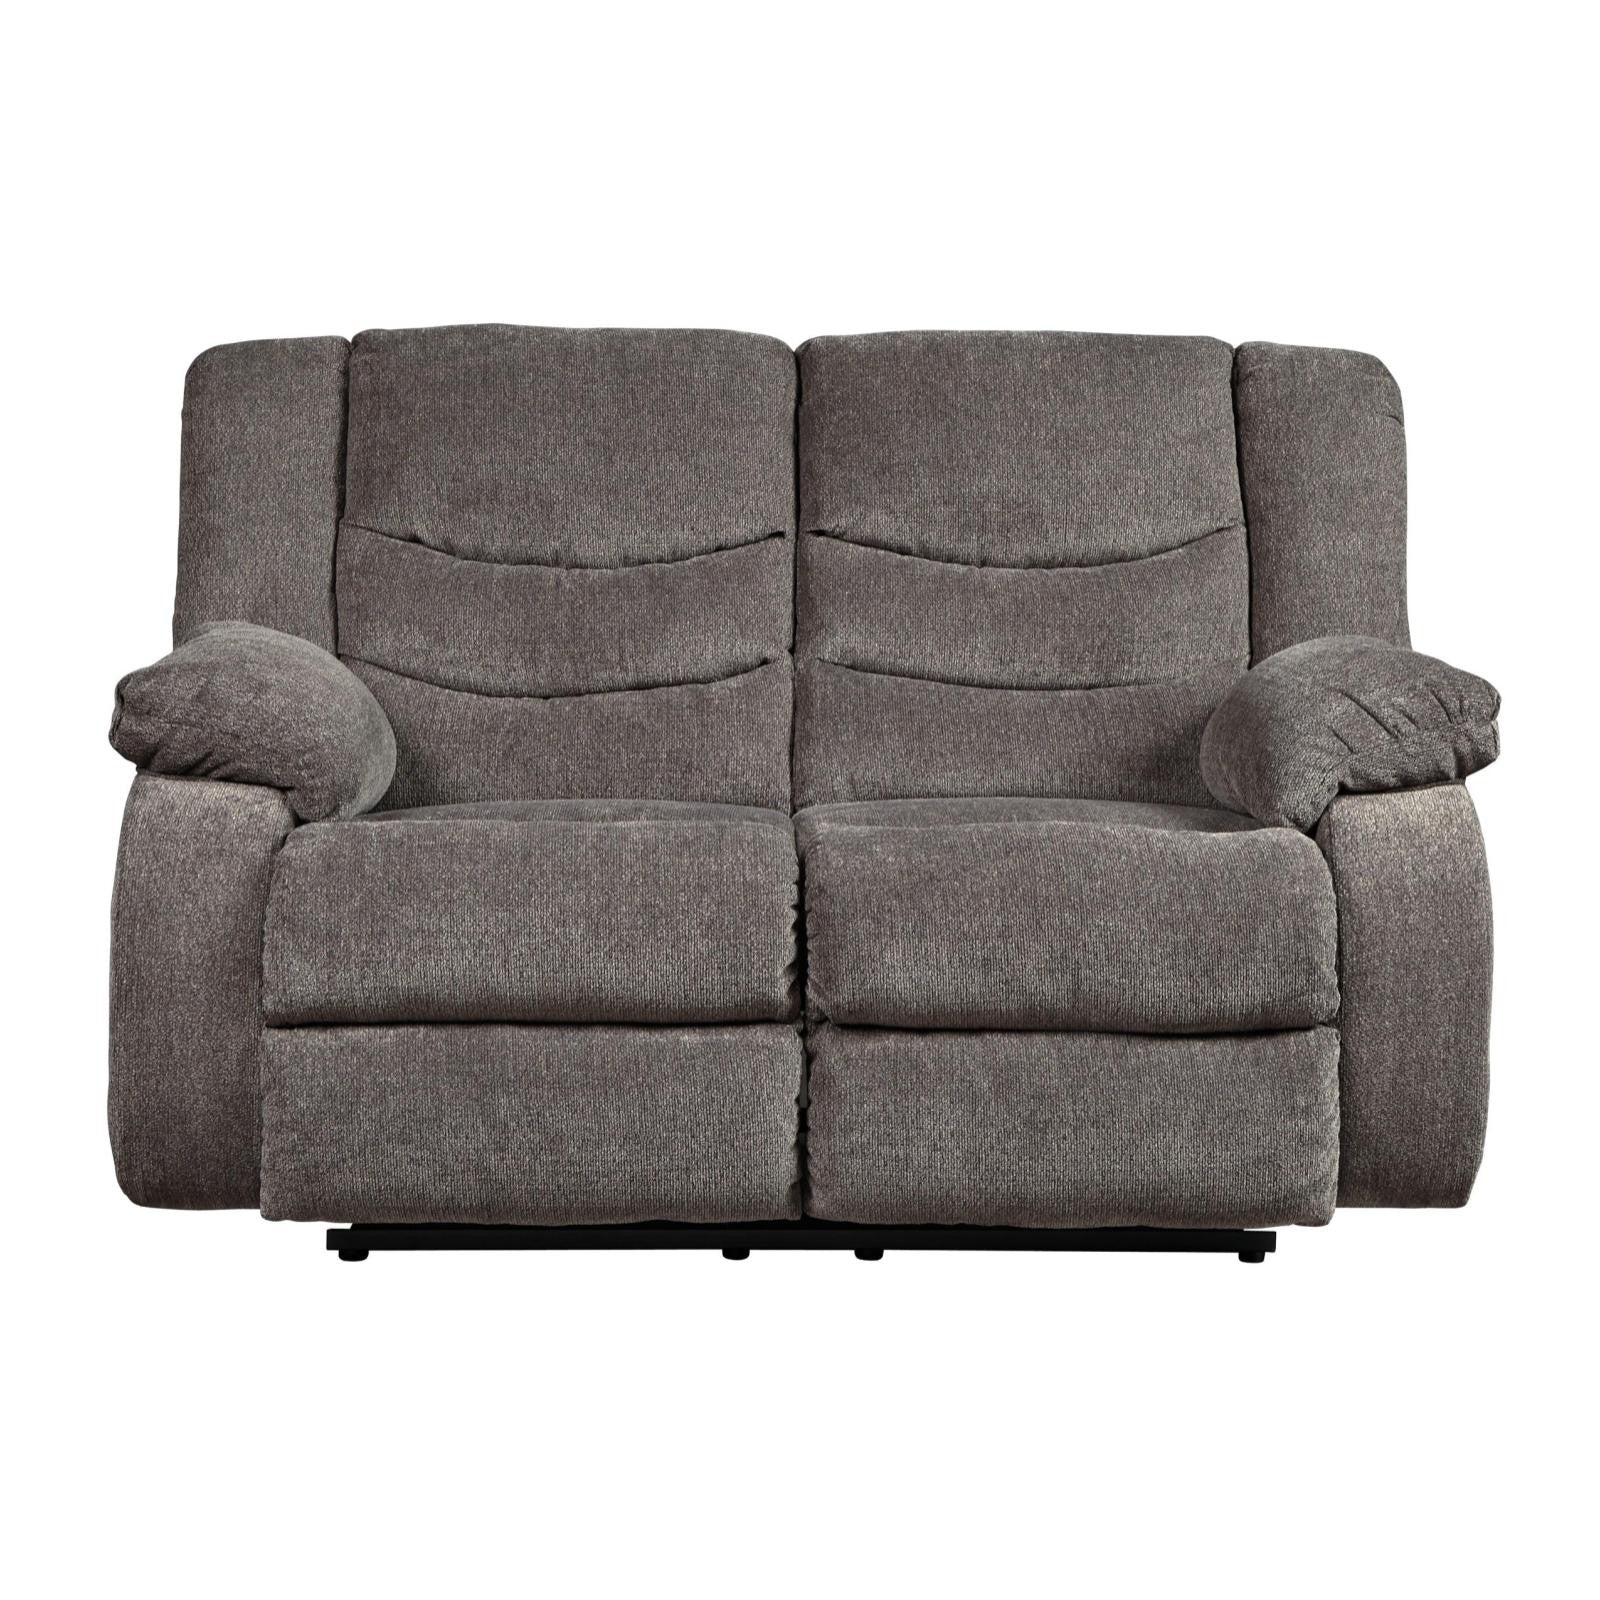 Charmant Tulen Reclining Loveseat, Loveseat, Ashley Furniture   Adams Furniture ...